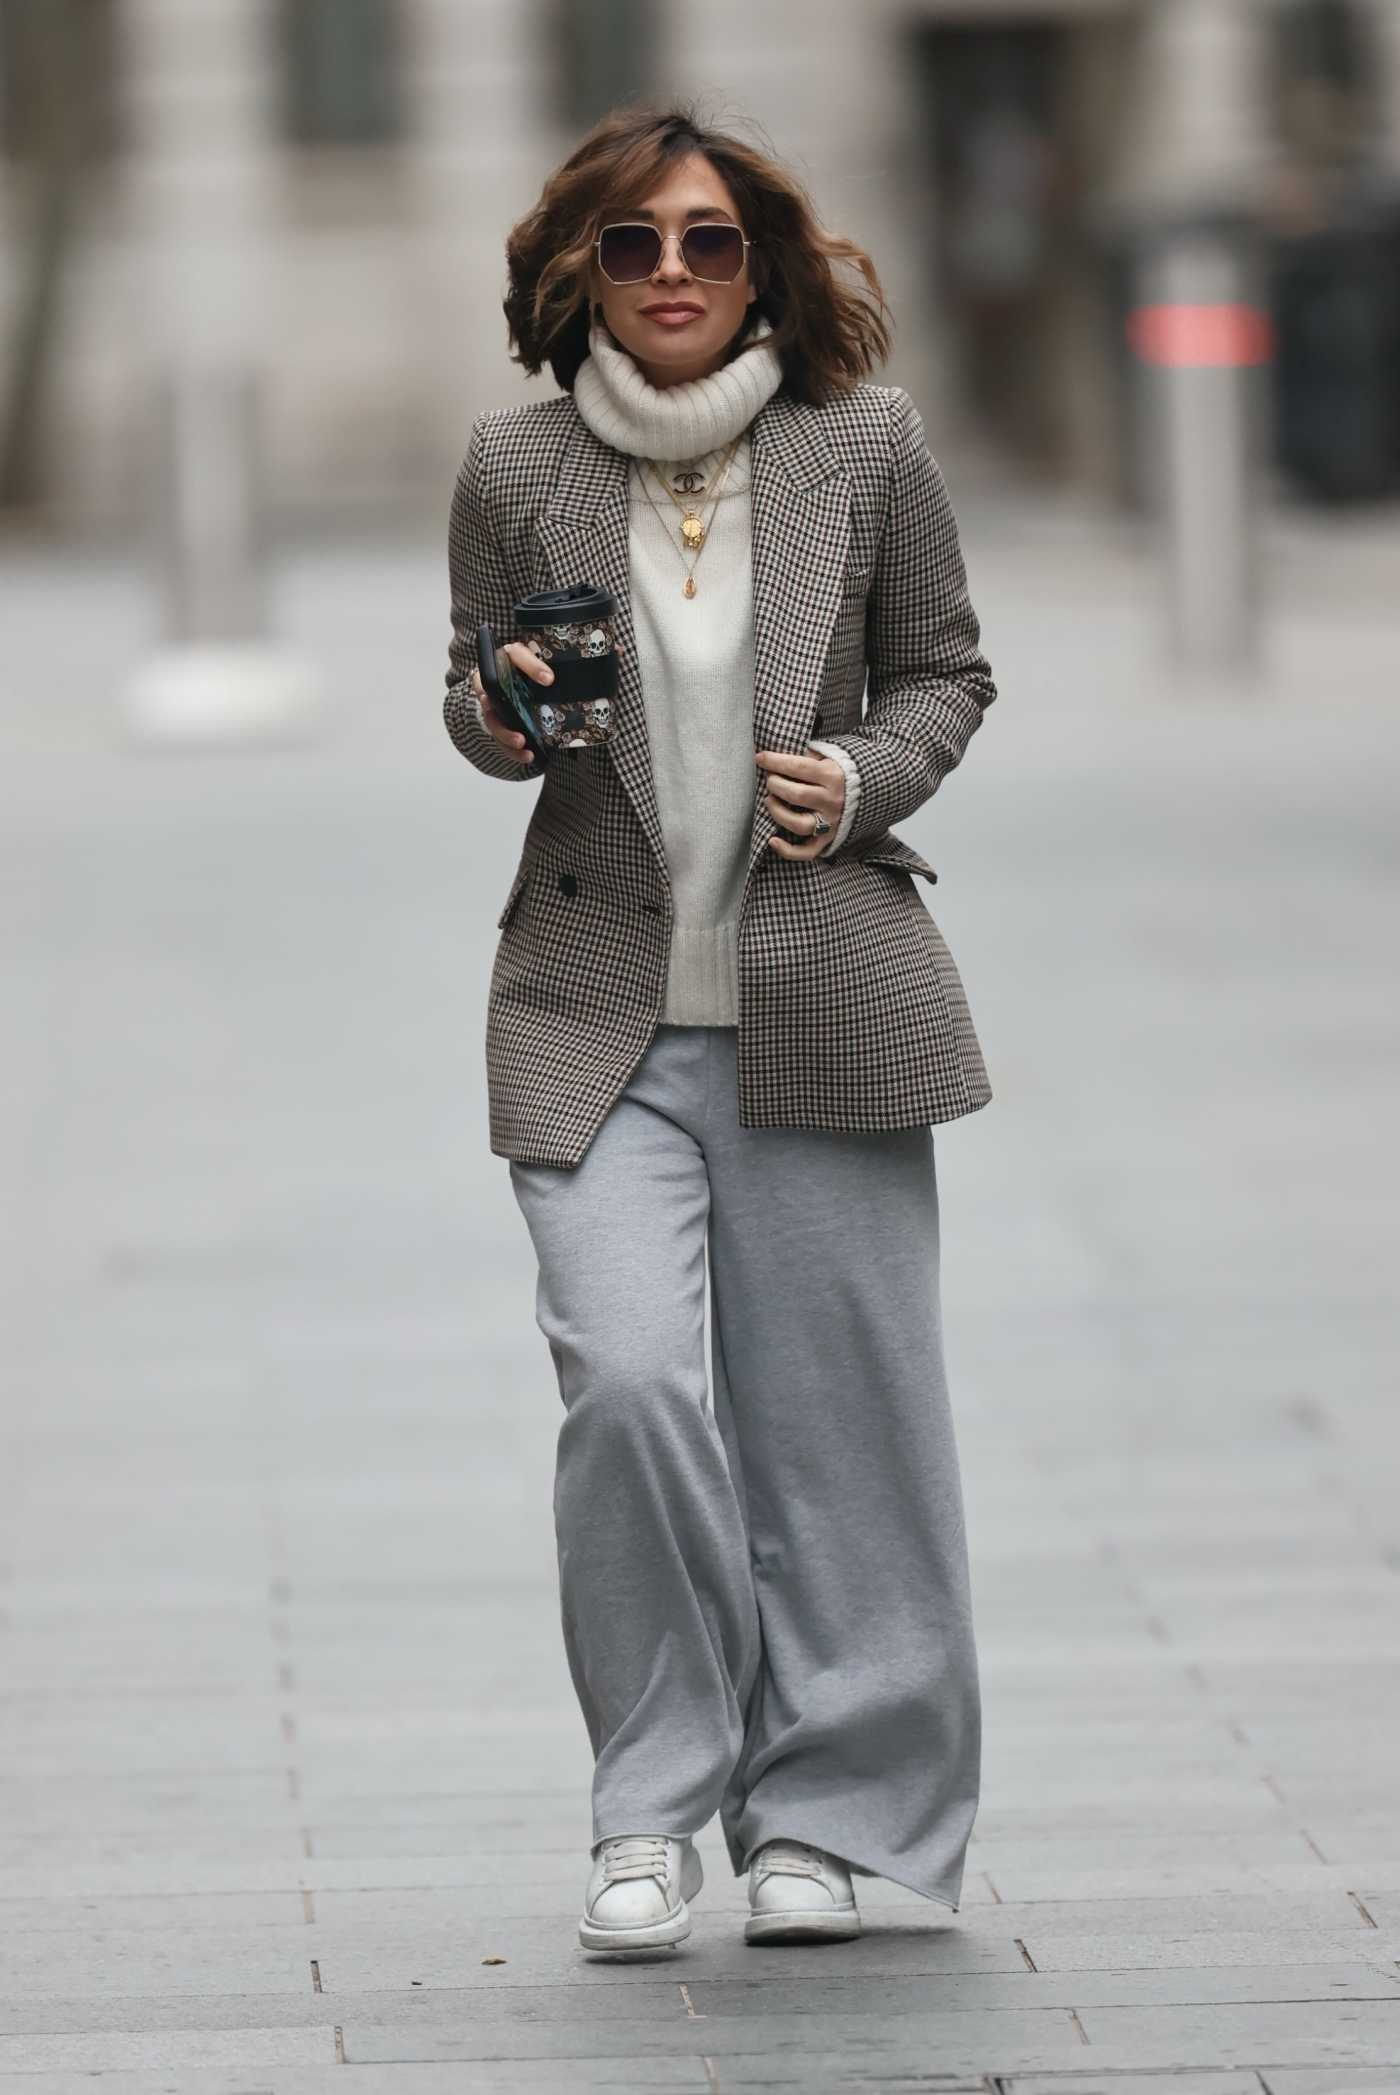 Myleene Klass in a Gray Flared Sweatpants Arrives at the Smooth Radio in London 12/26/2020